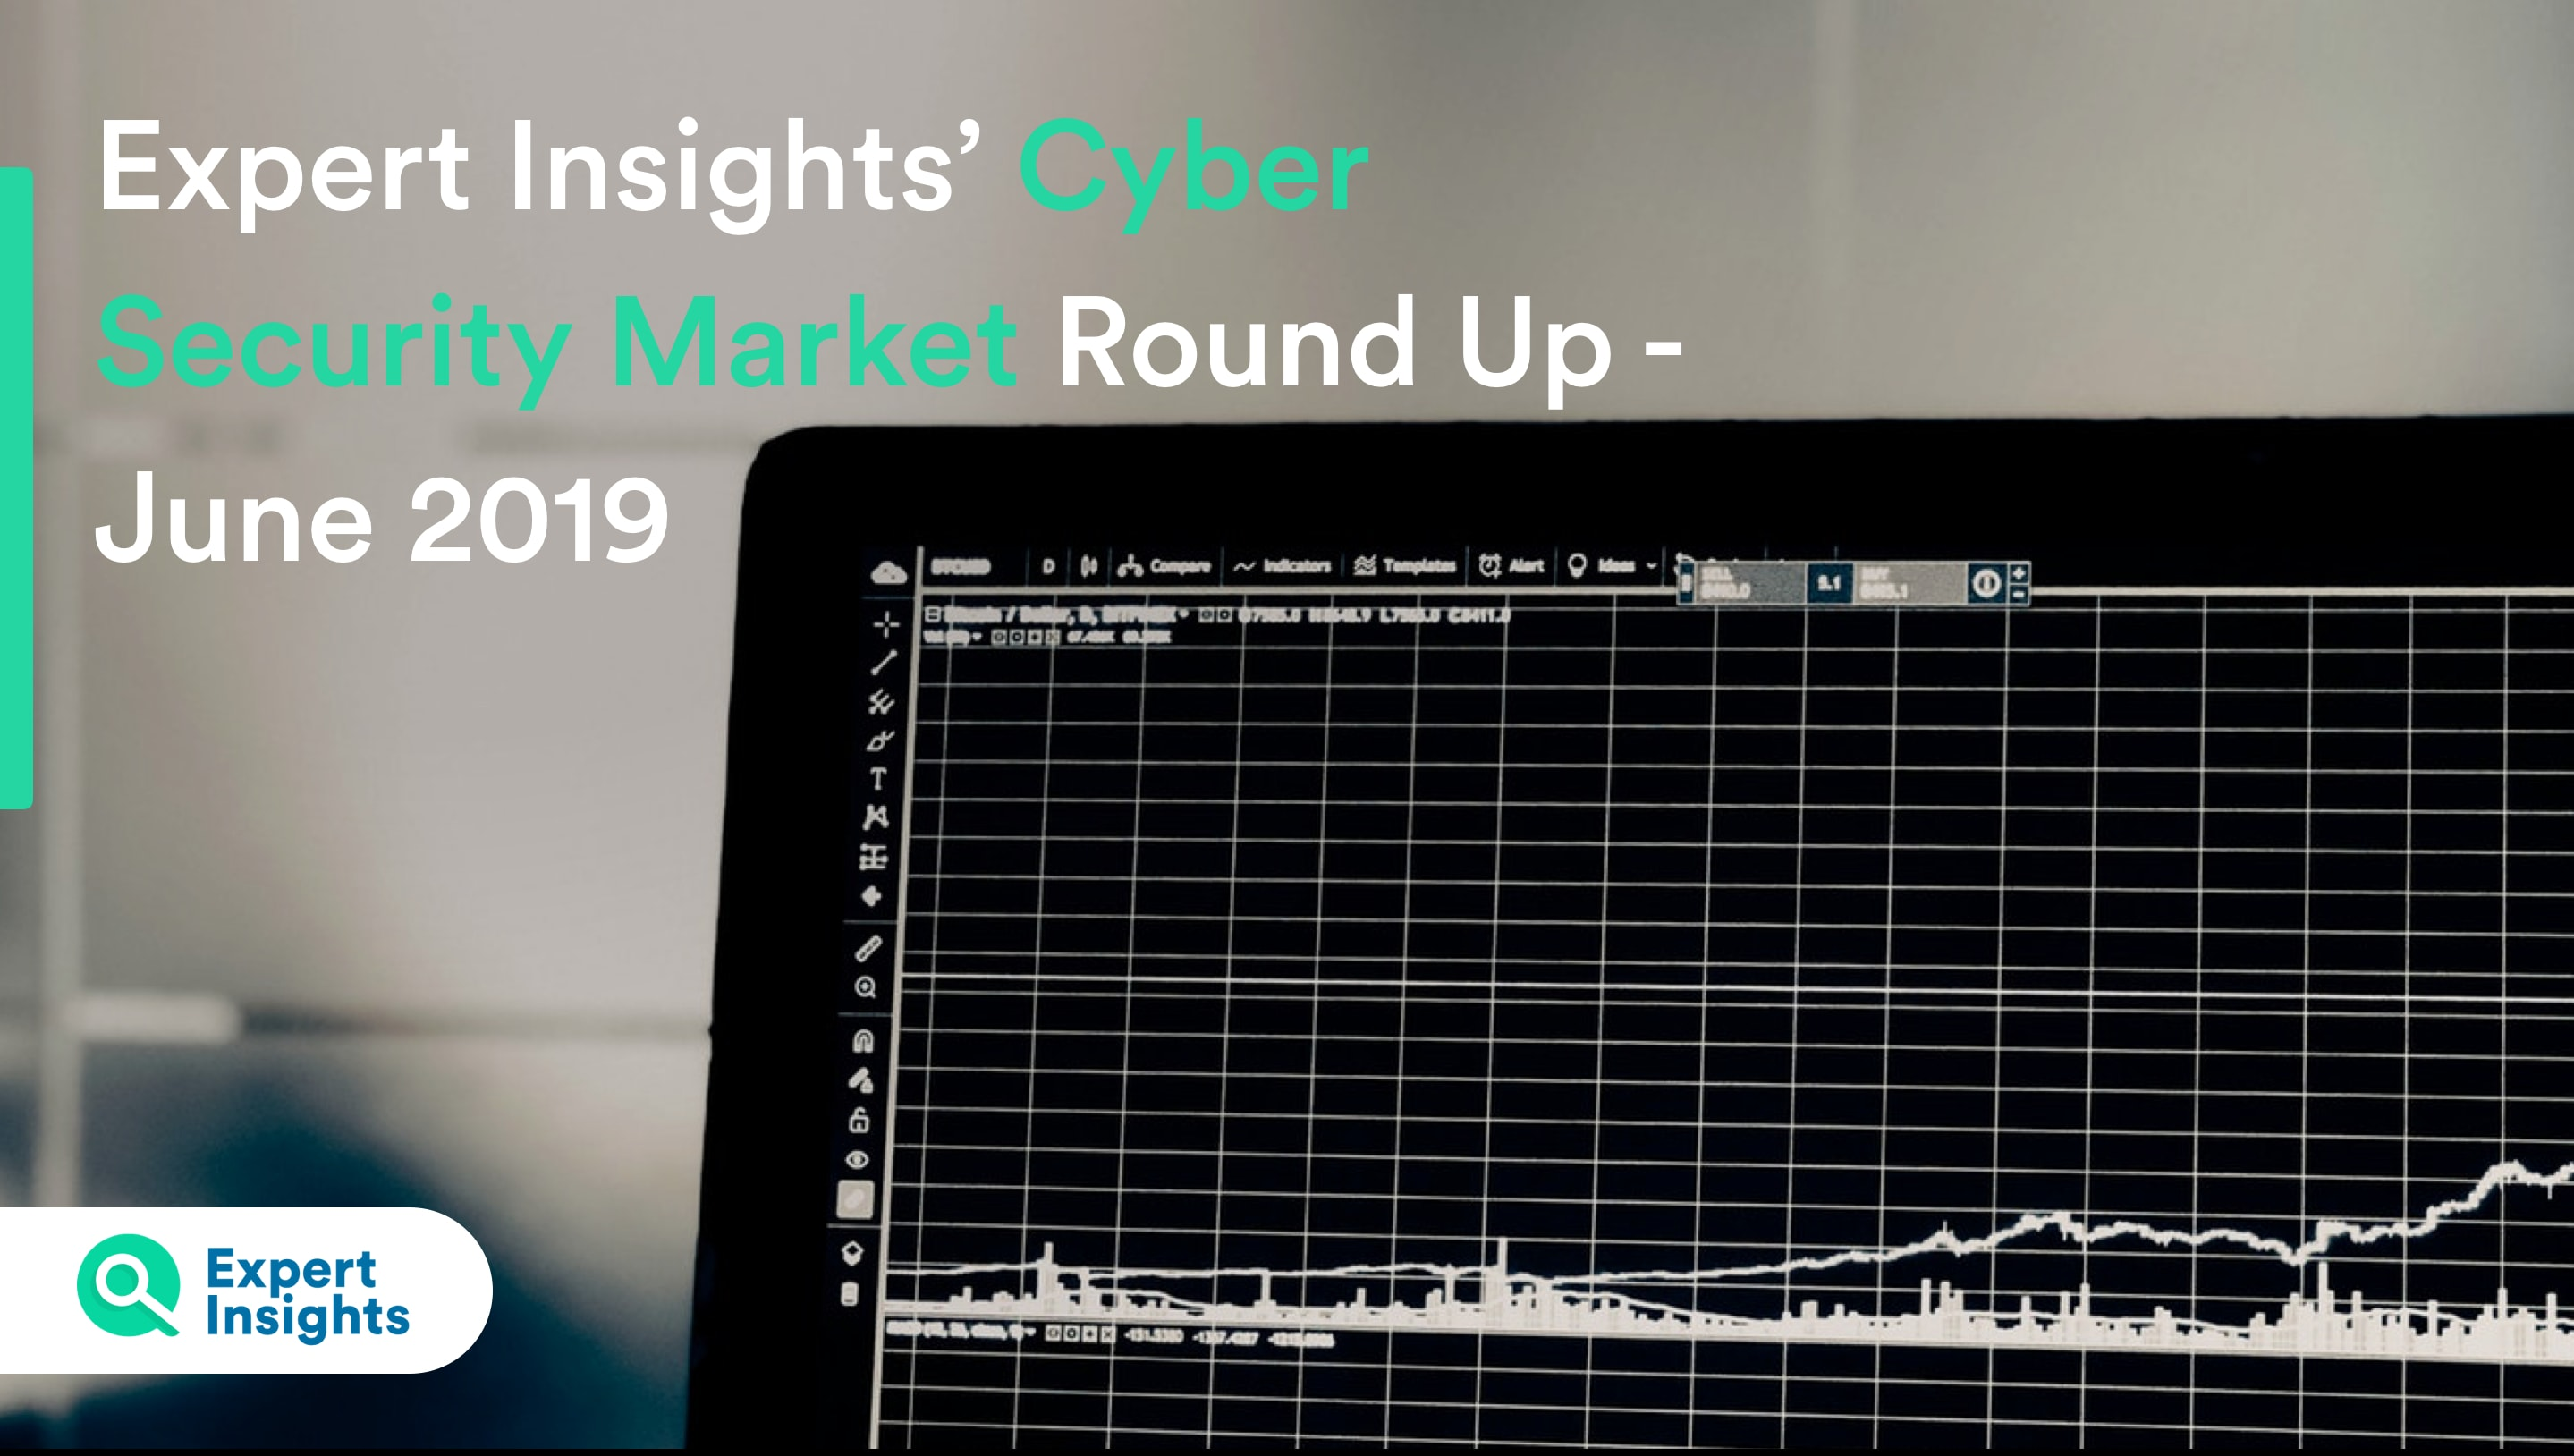 Expert Insights June 2019 market roundup